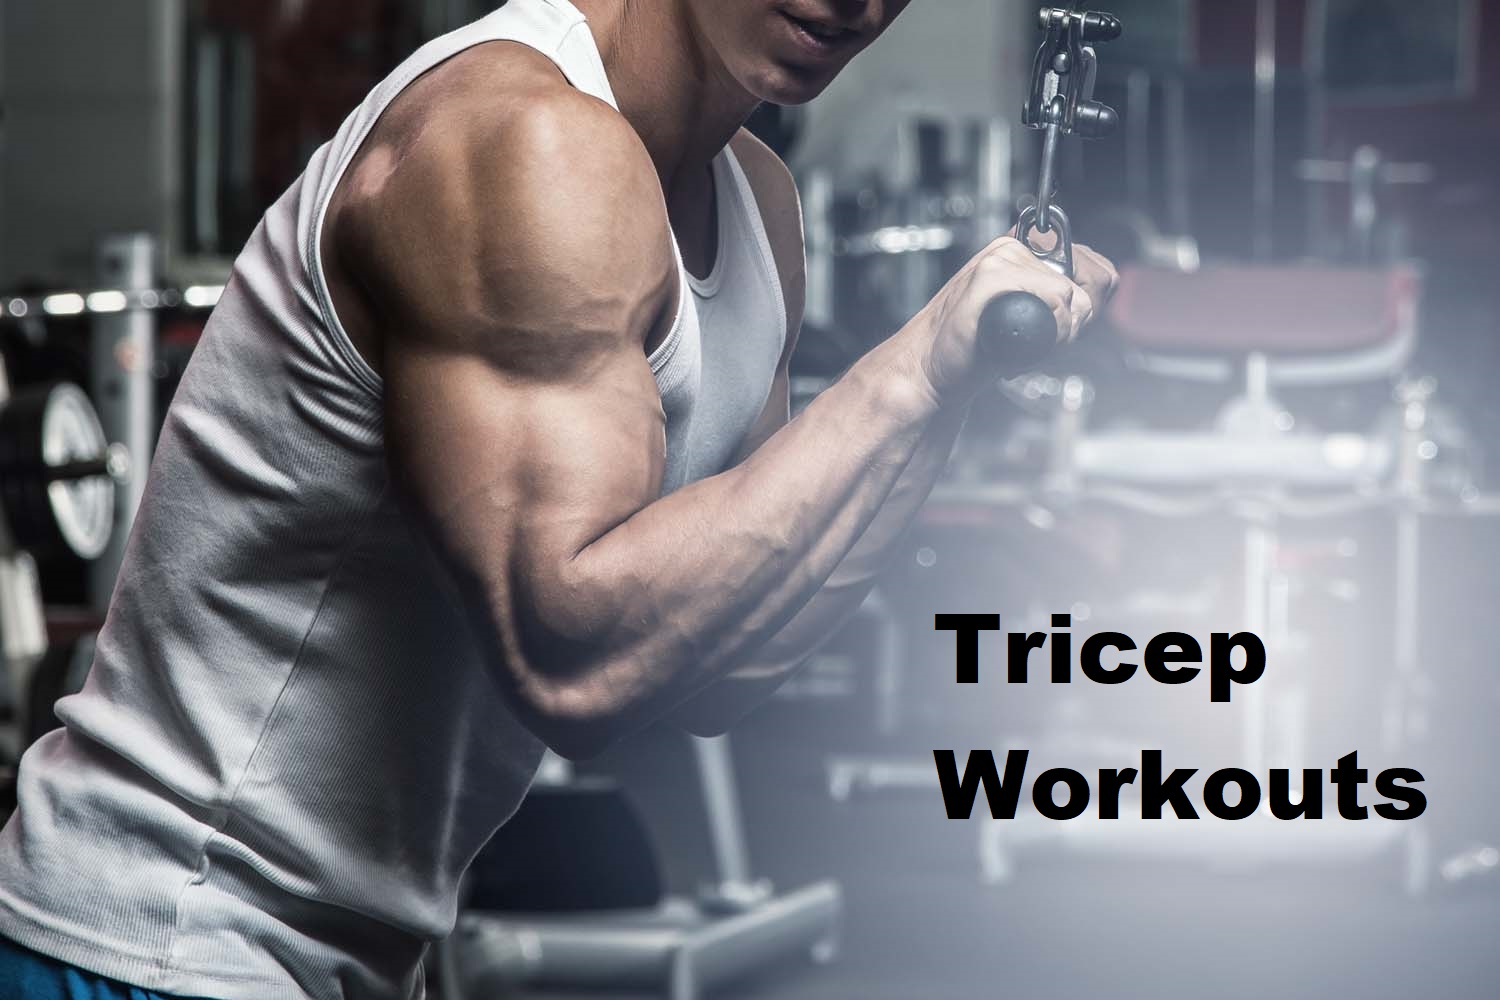 Tricep Workouts